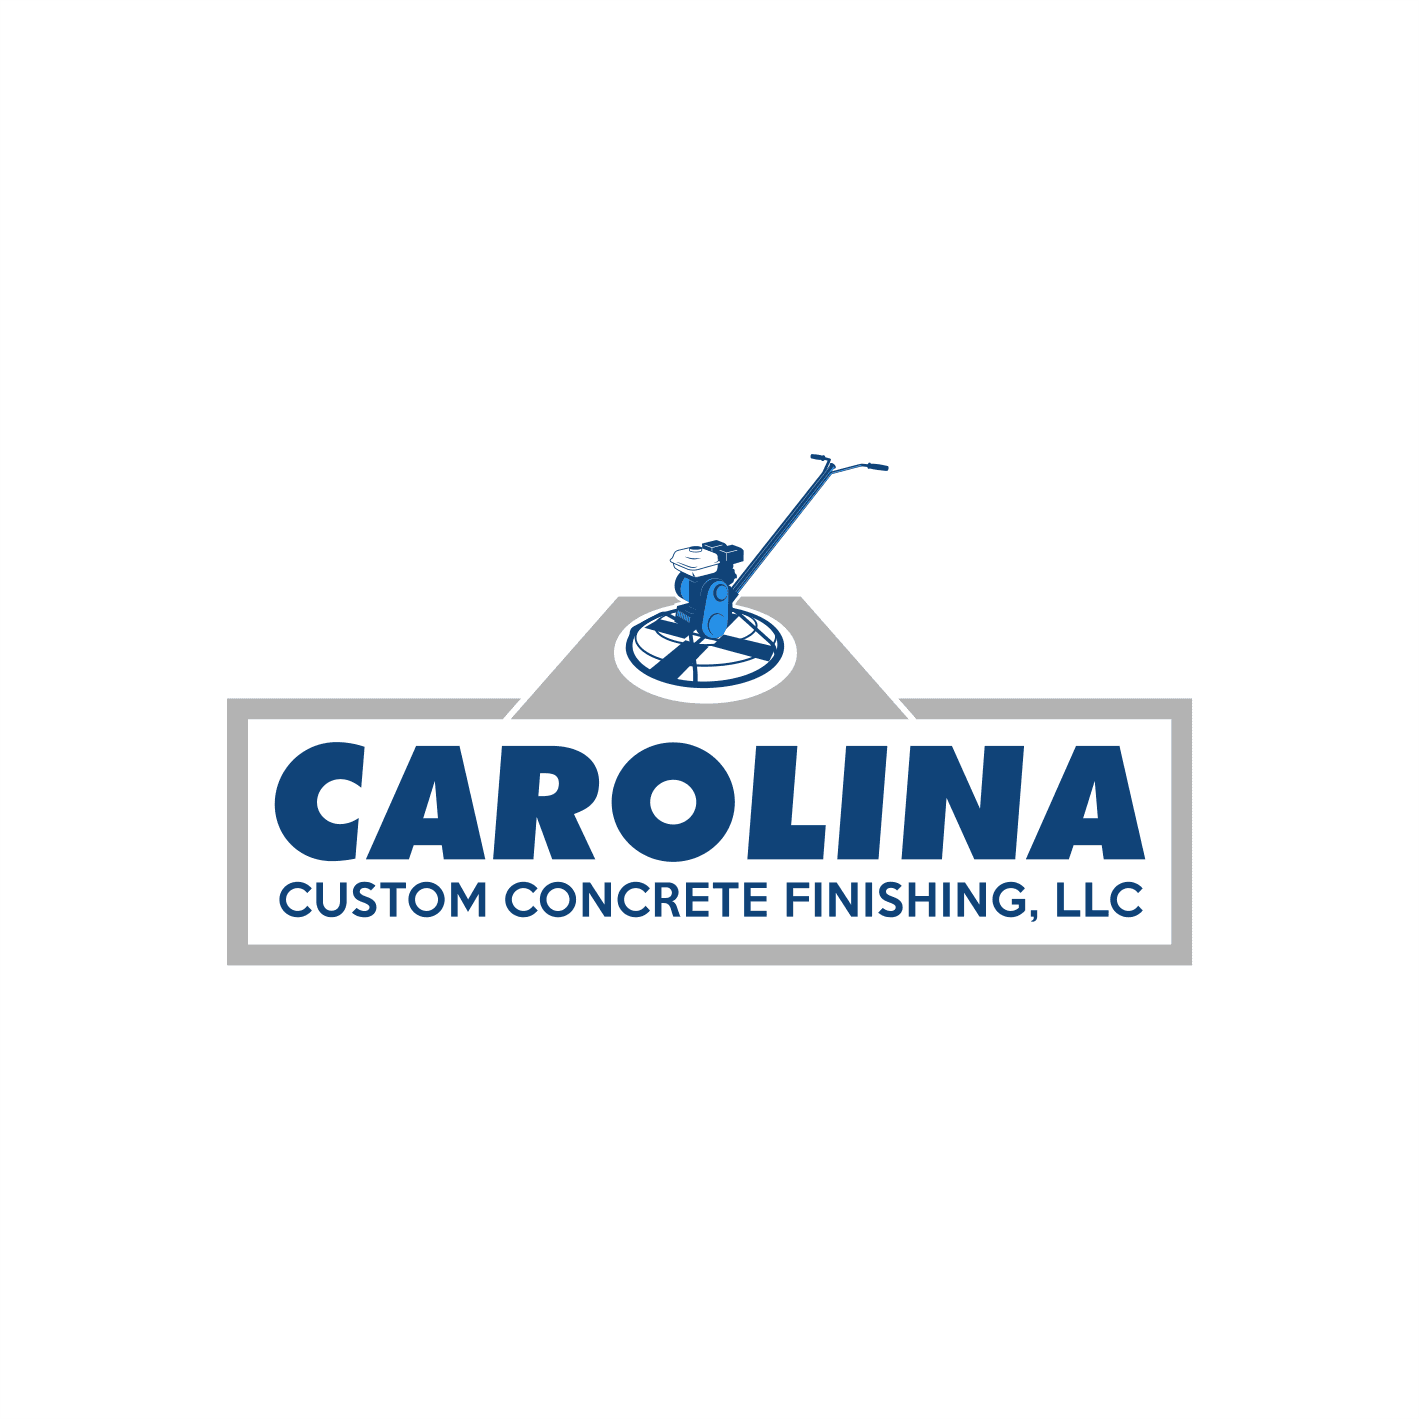 Carolina Custom Concrete Finishing. LLC